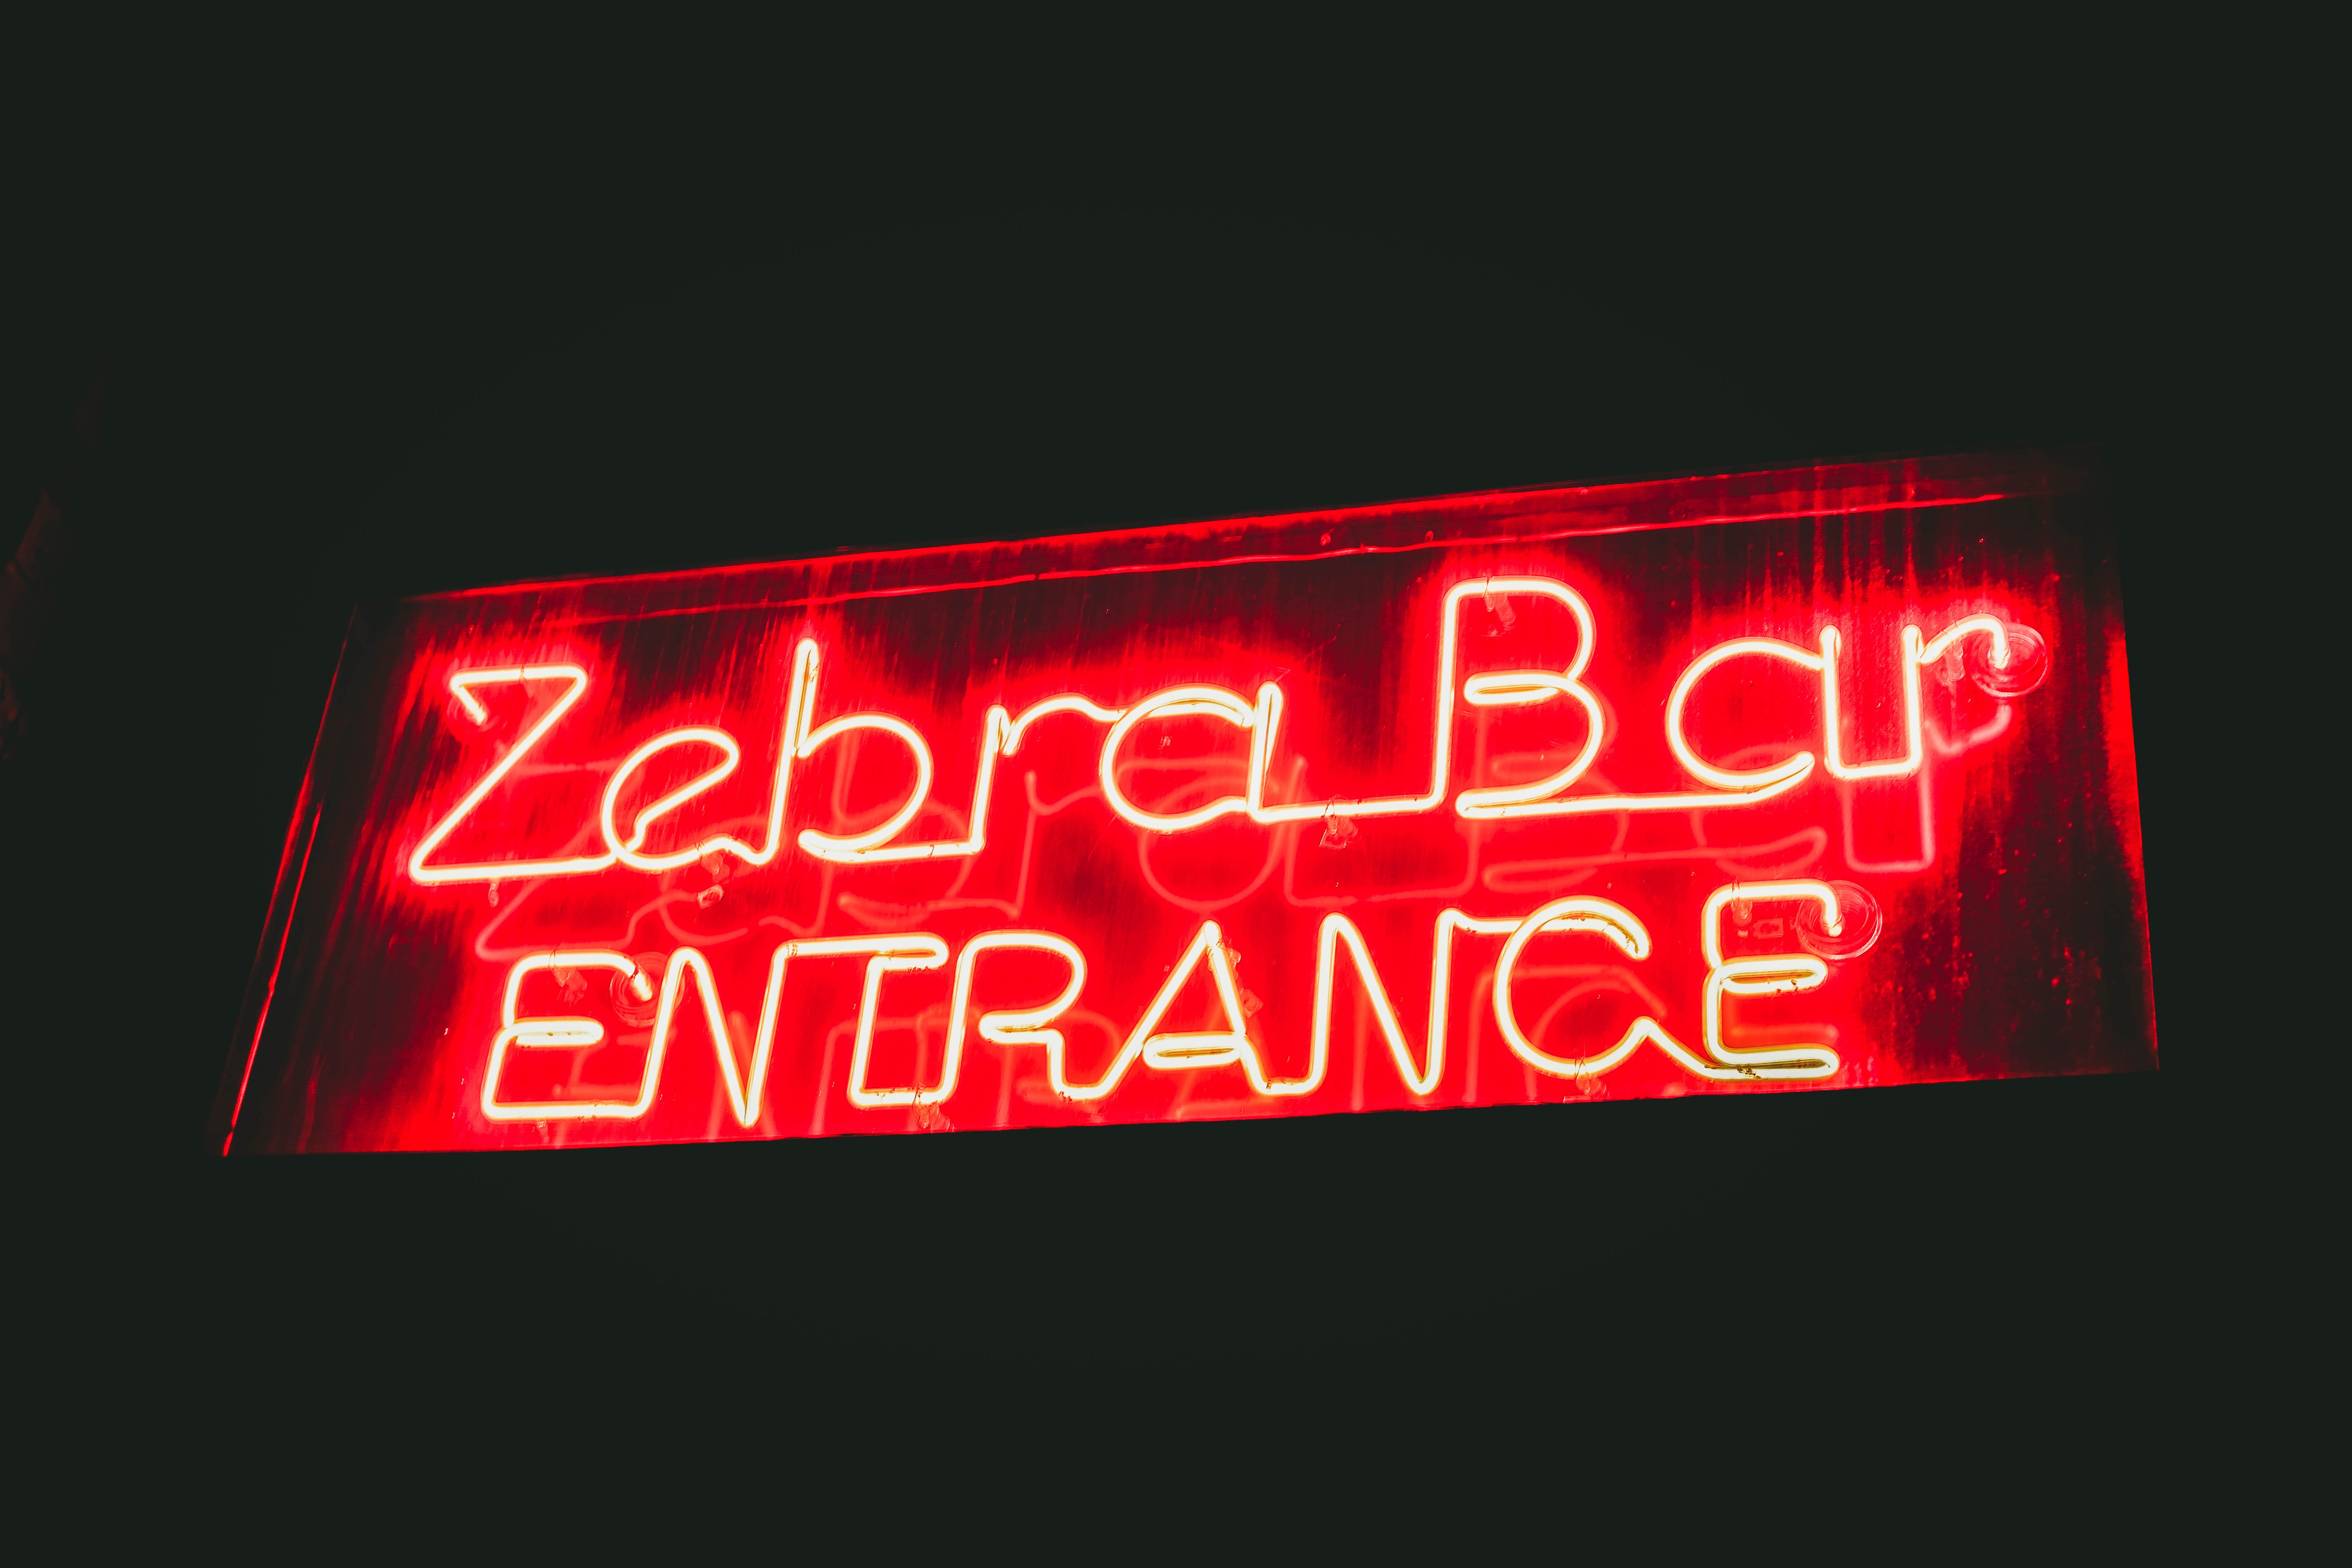 Zebra Bar Entrance signage